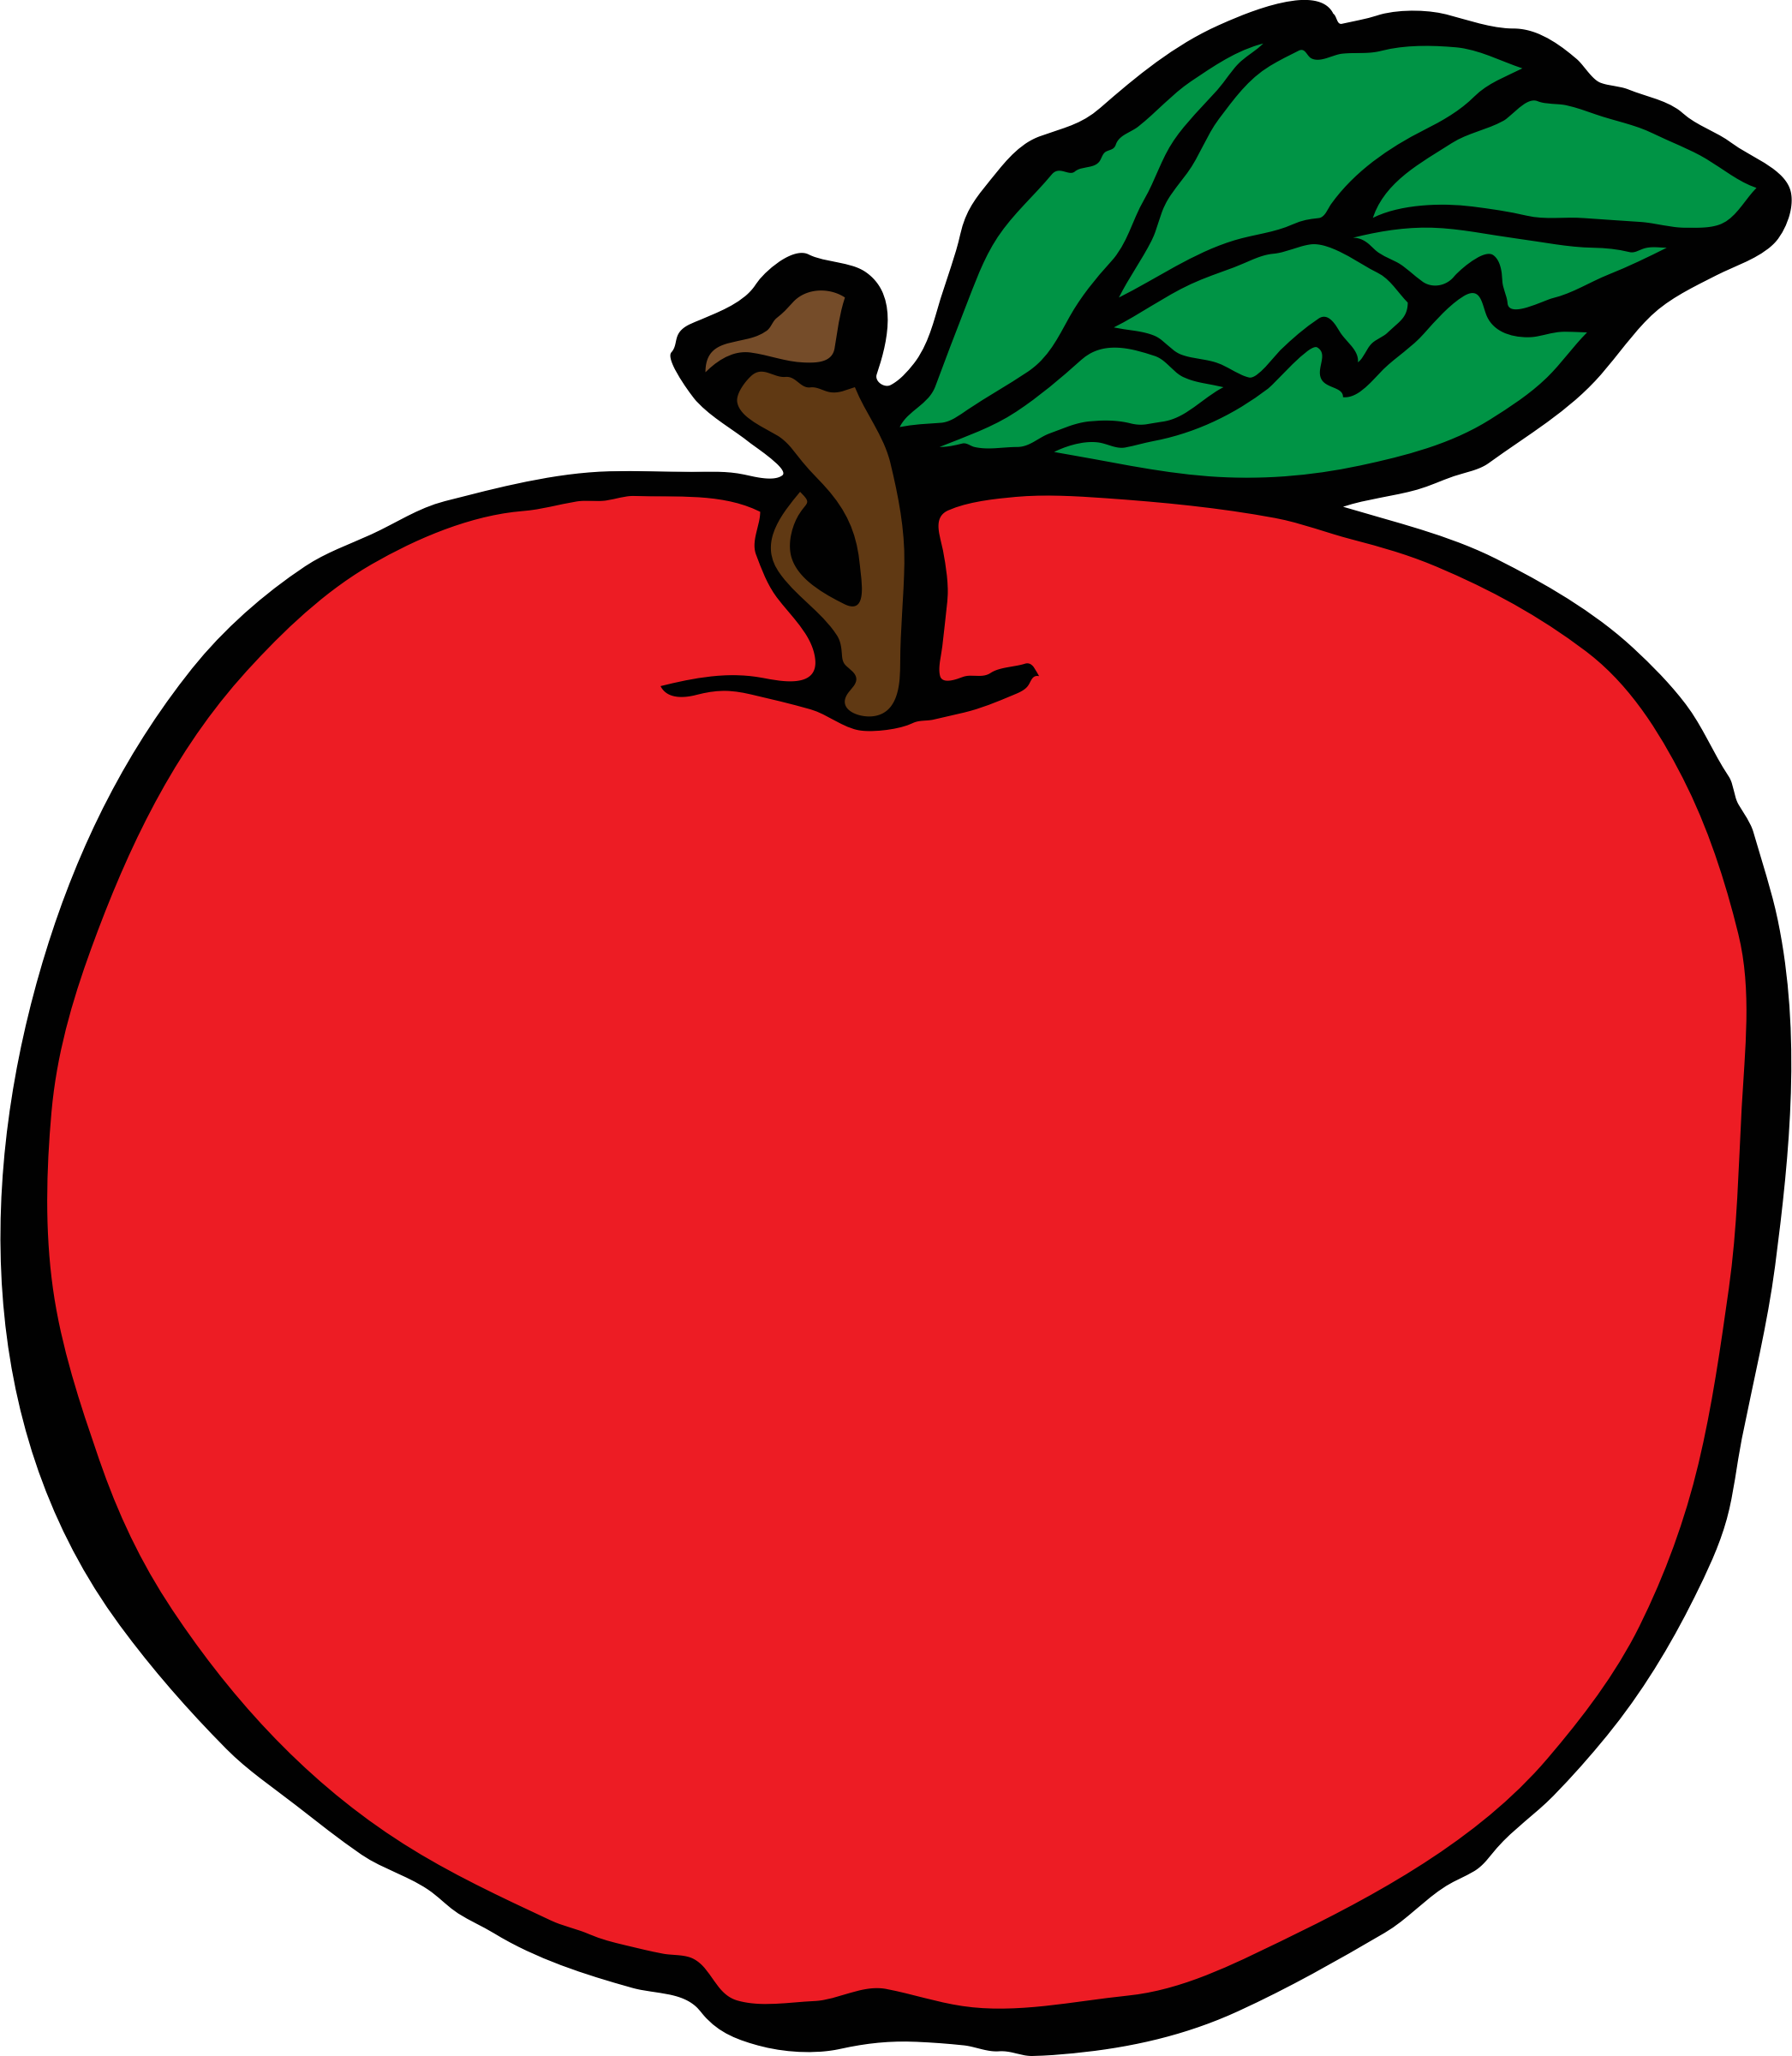 picture royalty free library Red apples clipart. Apple big image png